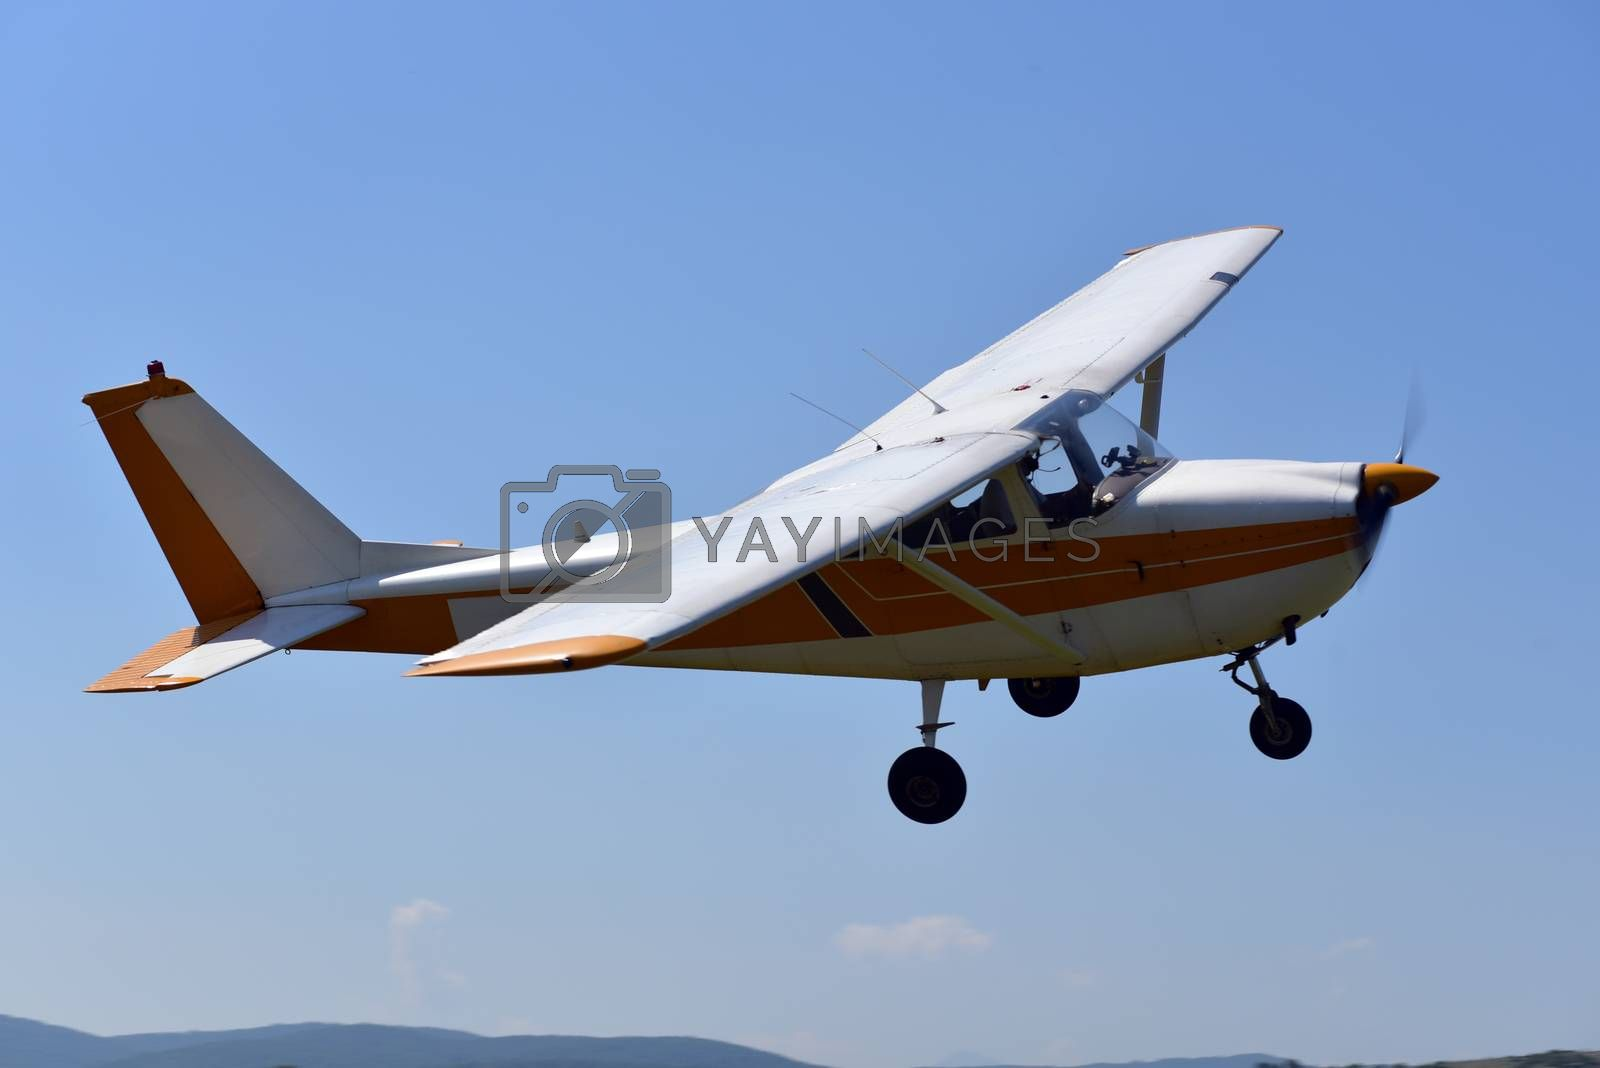 Royalty free image of A small sports single-engine plane is flying by aselsa